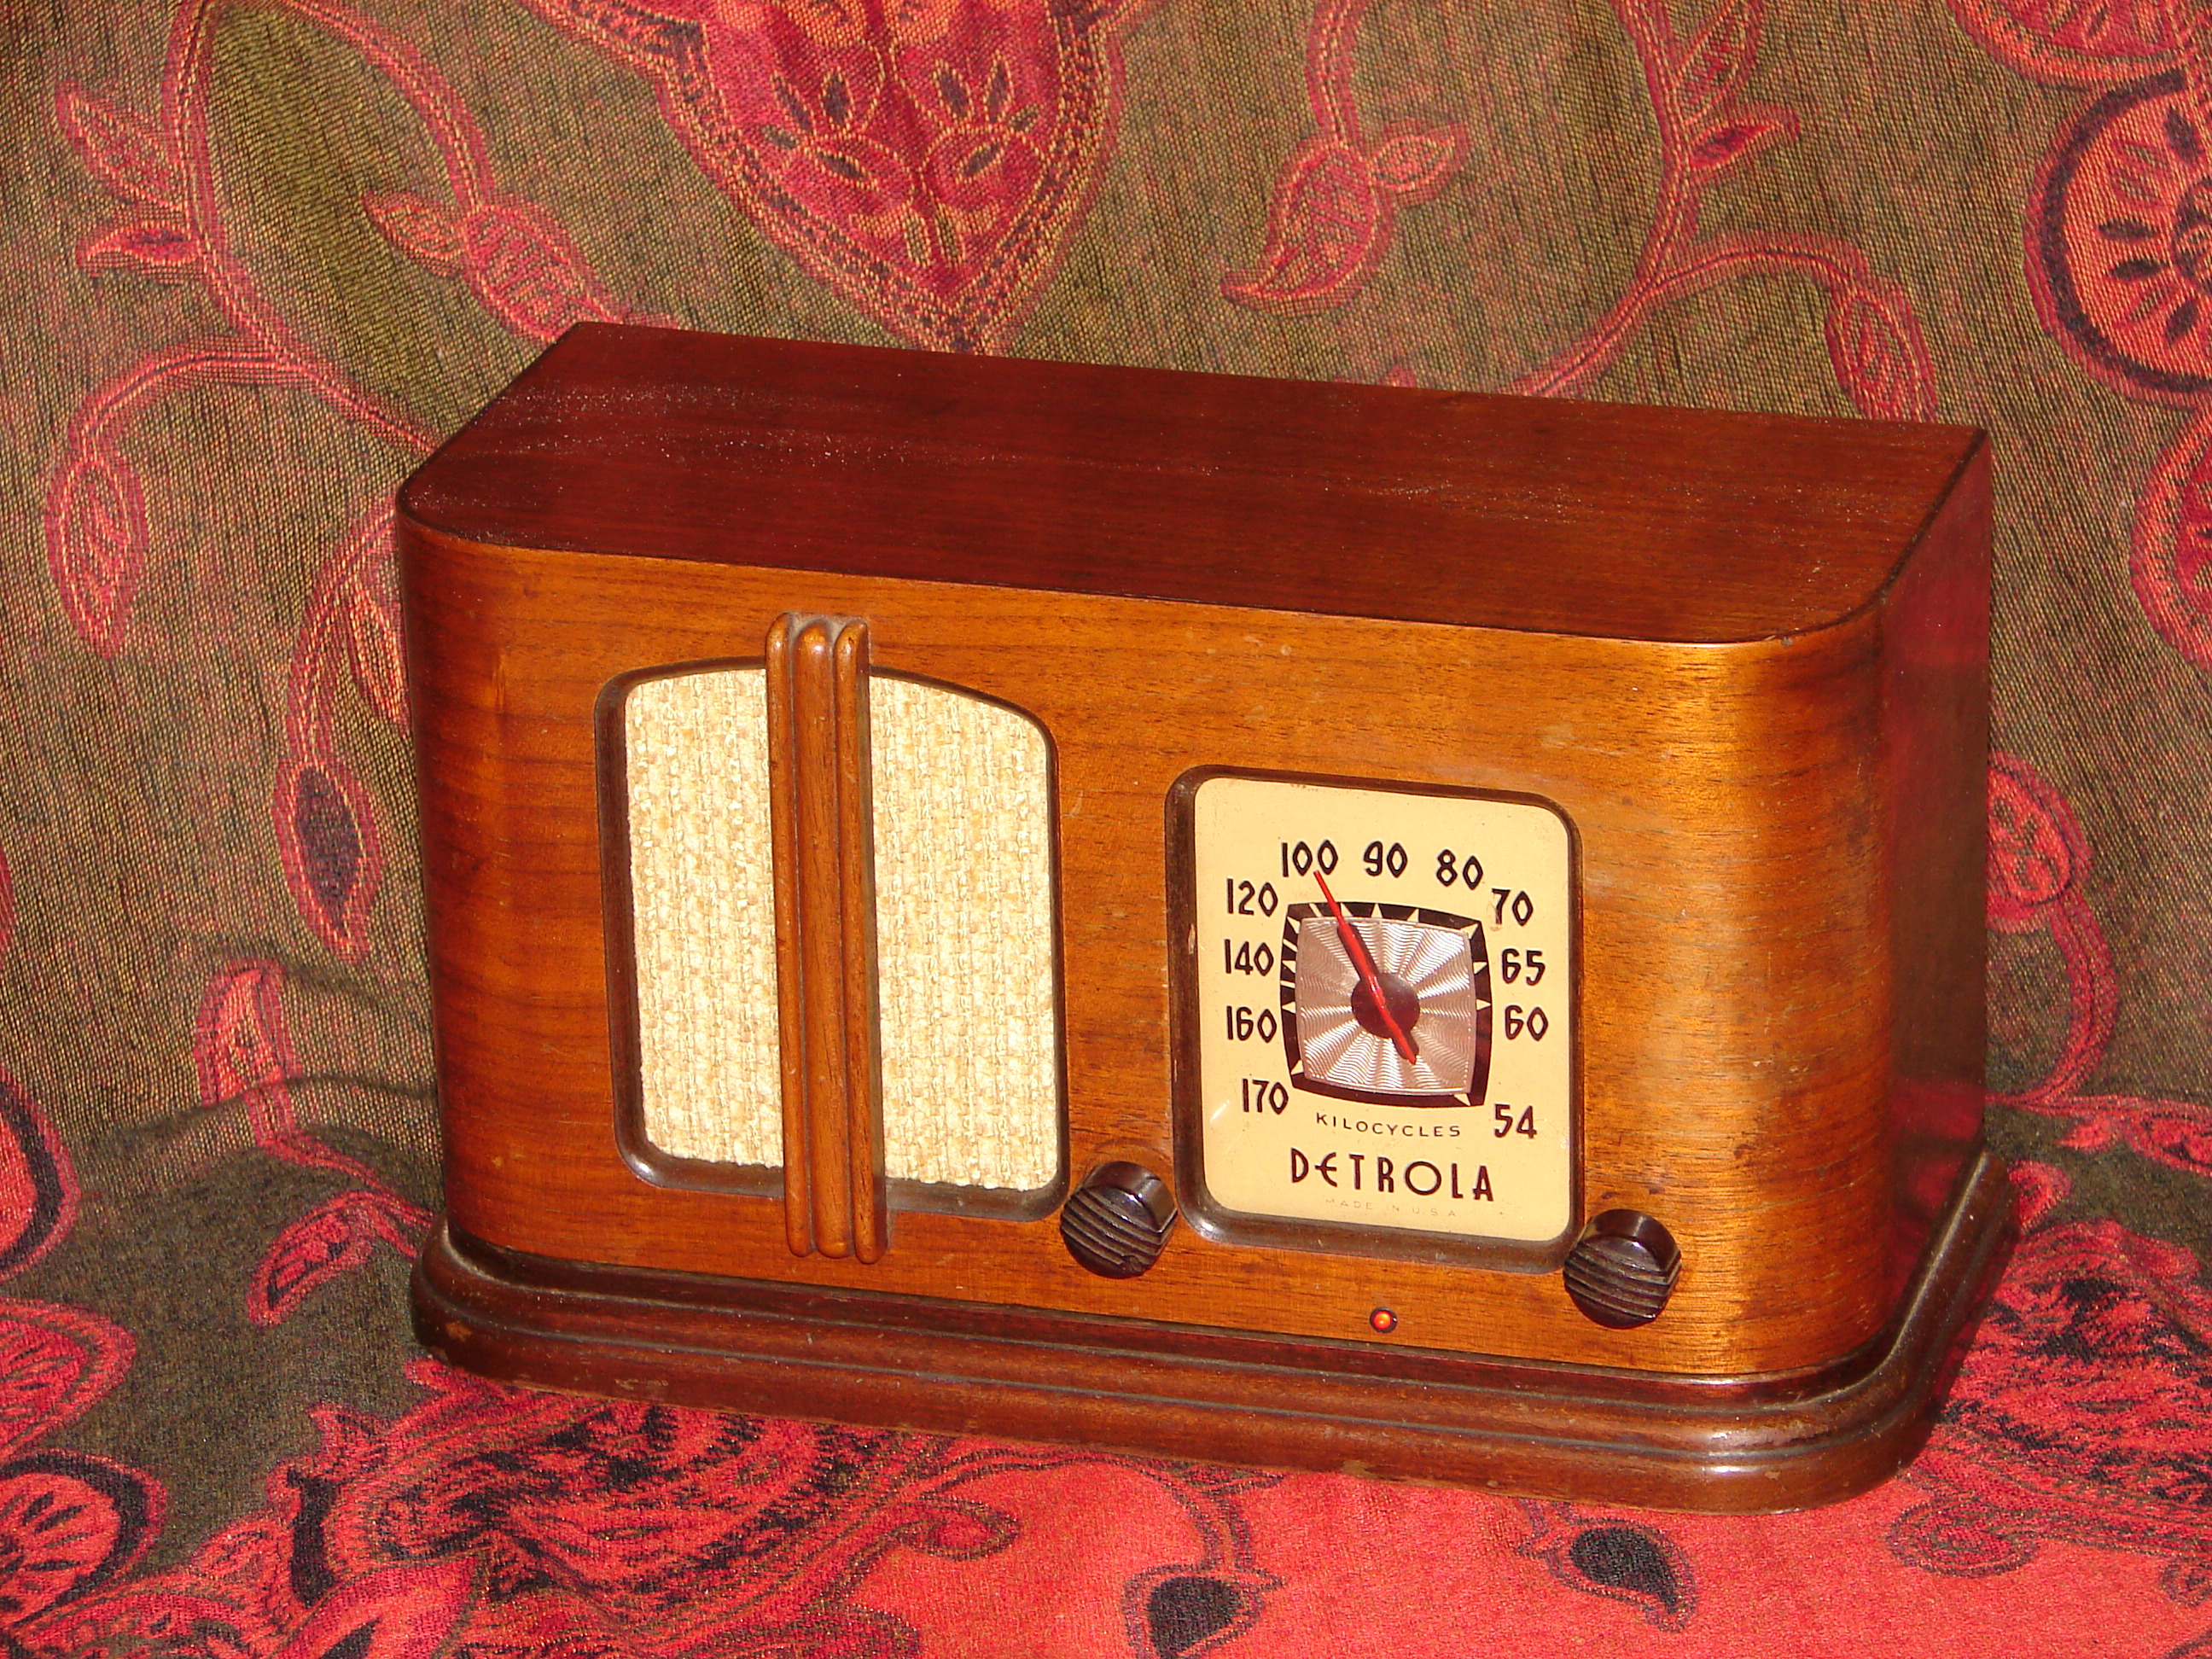 Detrola Radio Amp